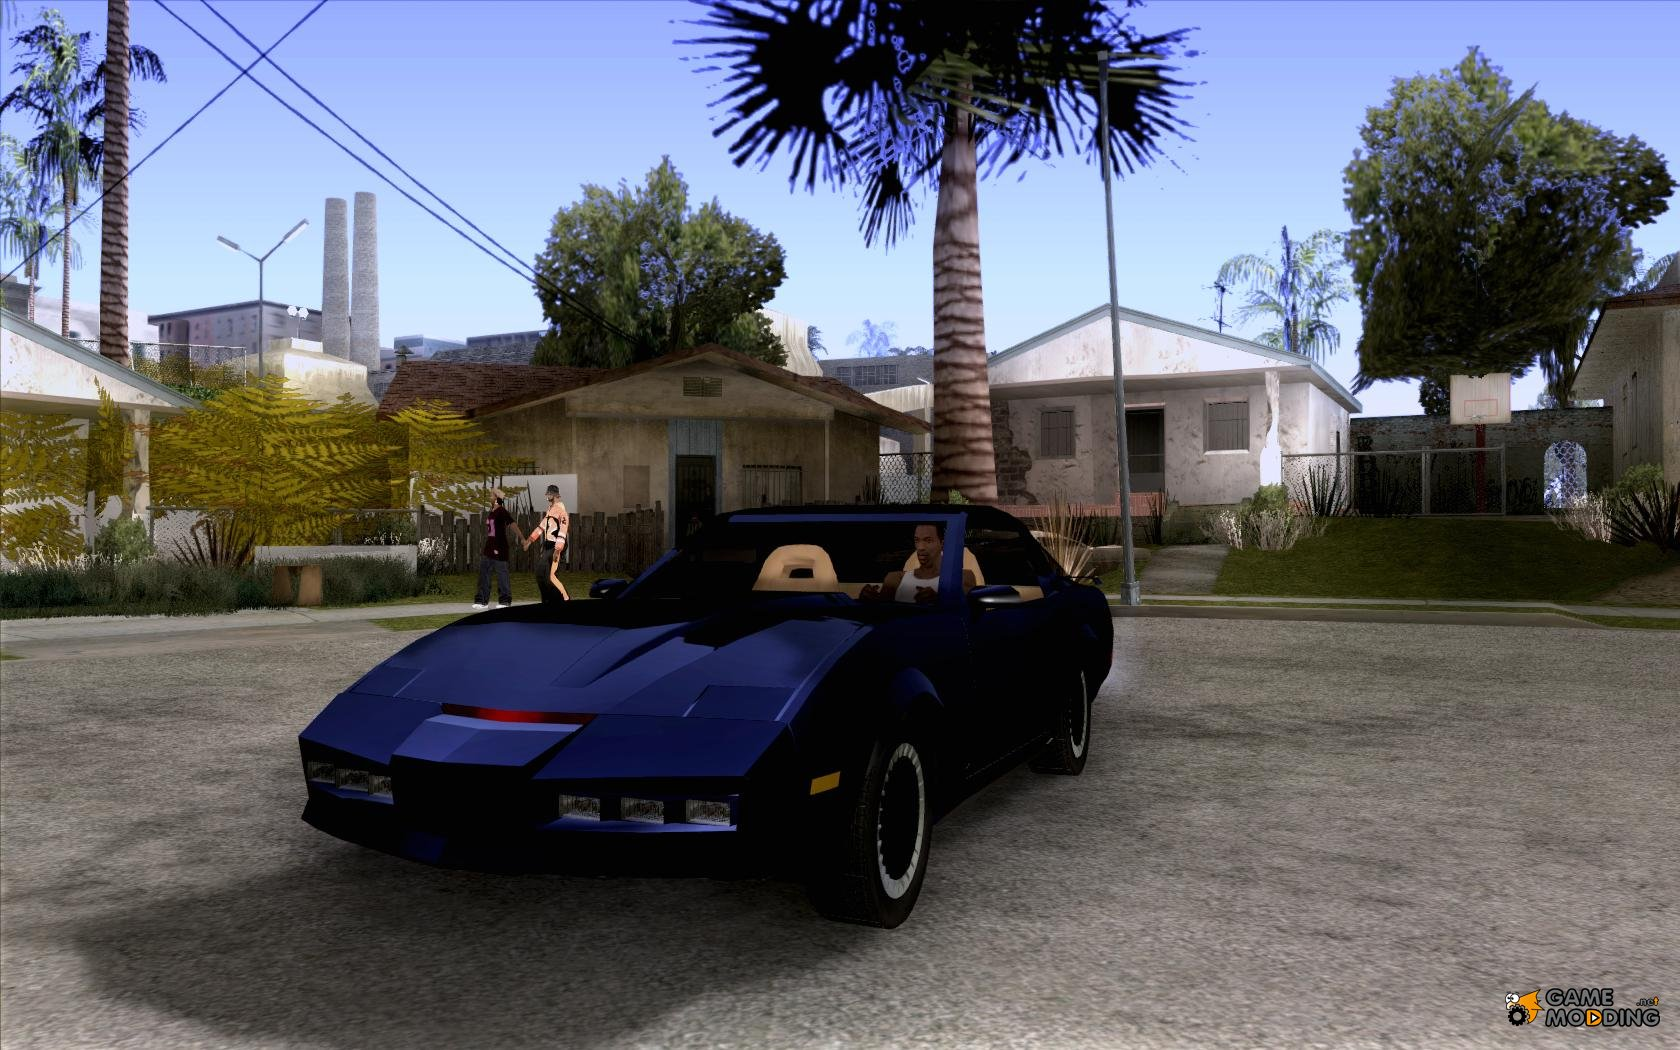 1989 pontiac firebird k i t t knight industries two thousand for gta san andreas. Black Bedroom Furniture Sets. Home Design Ideas